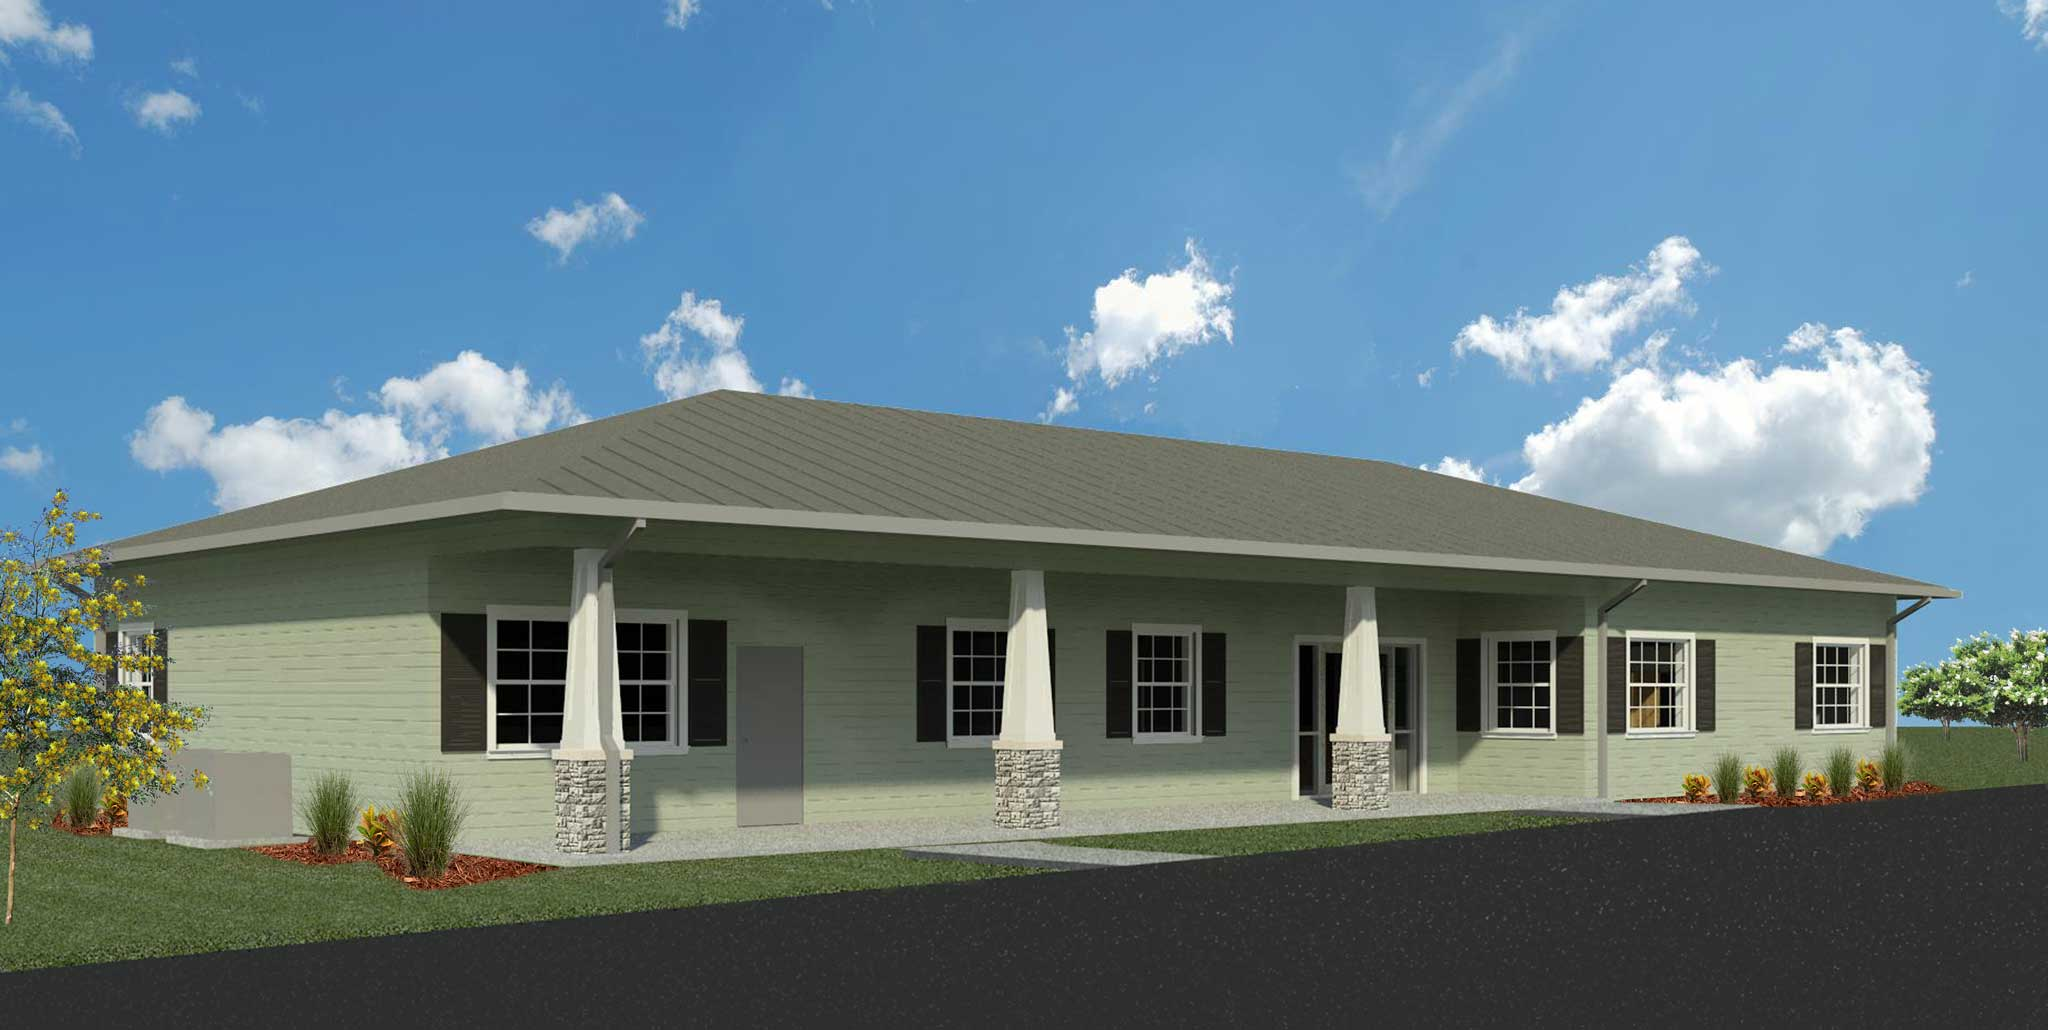 Gainesville, Florida Airport Breaks Ground On FBO